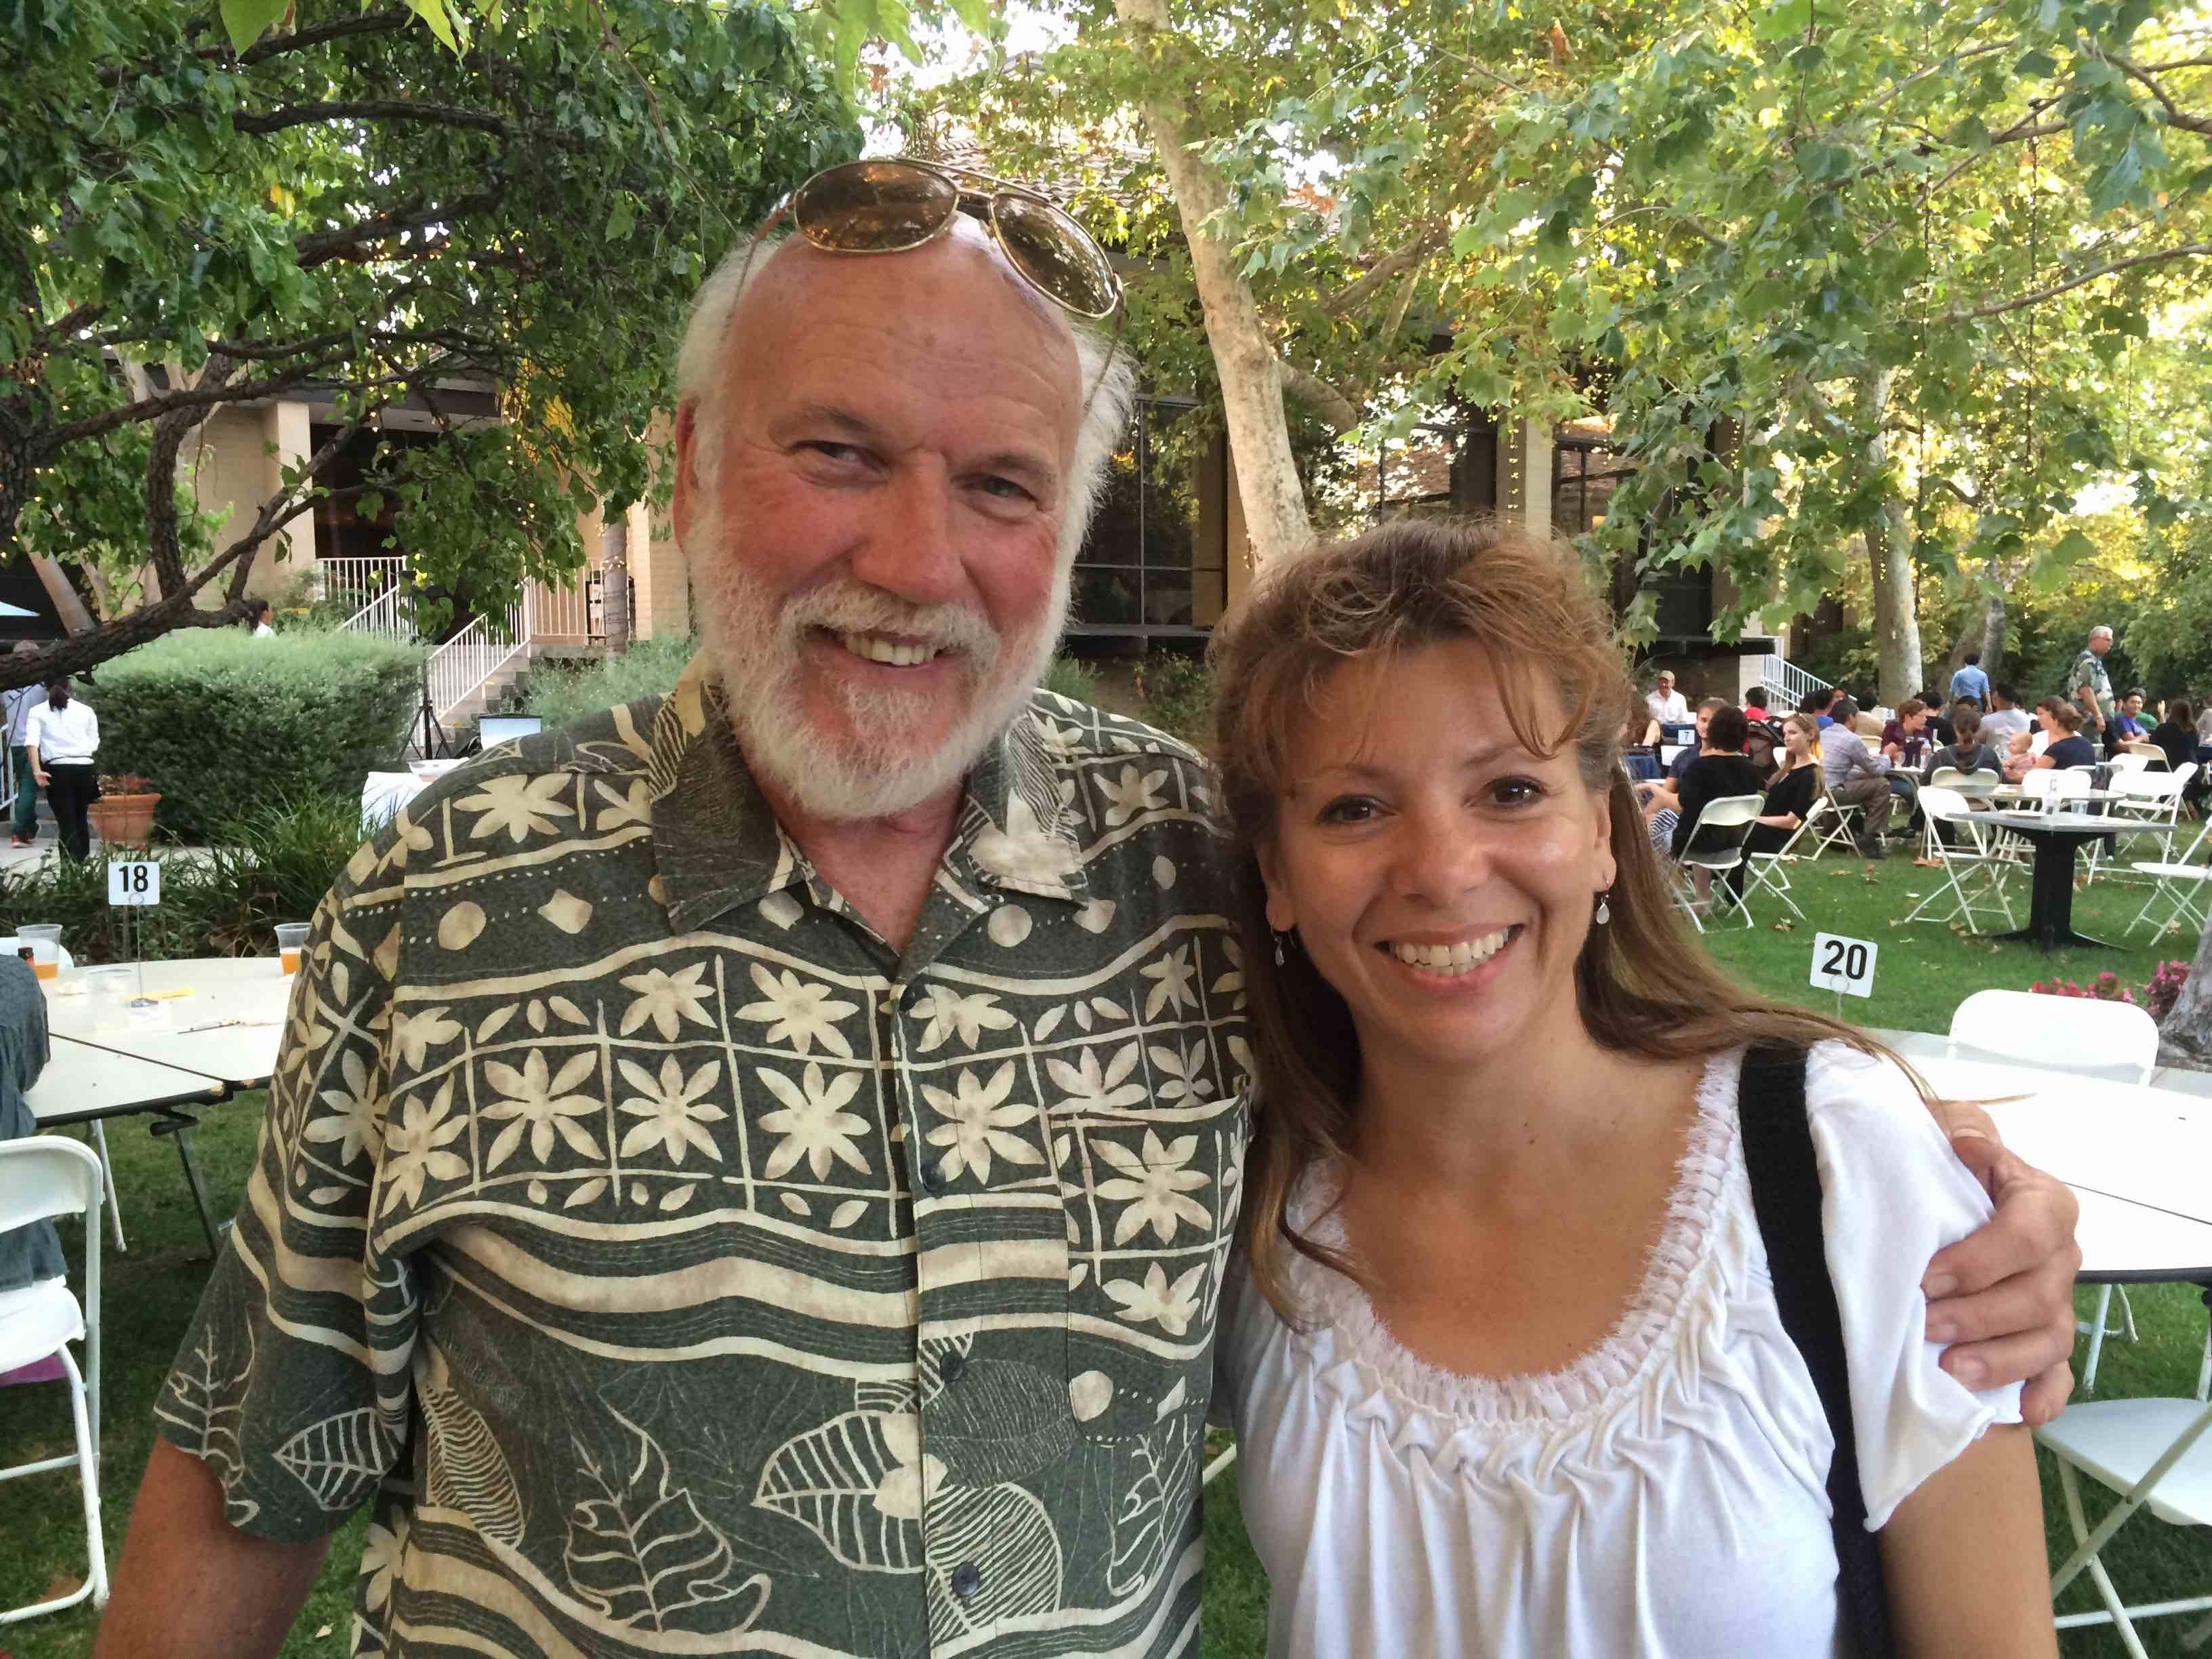 Mike Ezell and Lisa Wingen